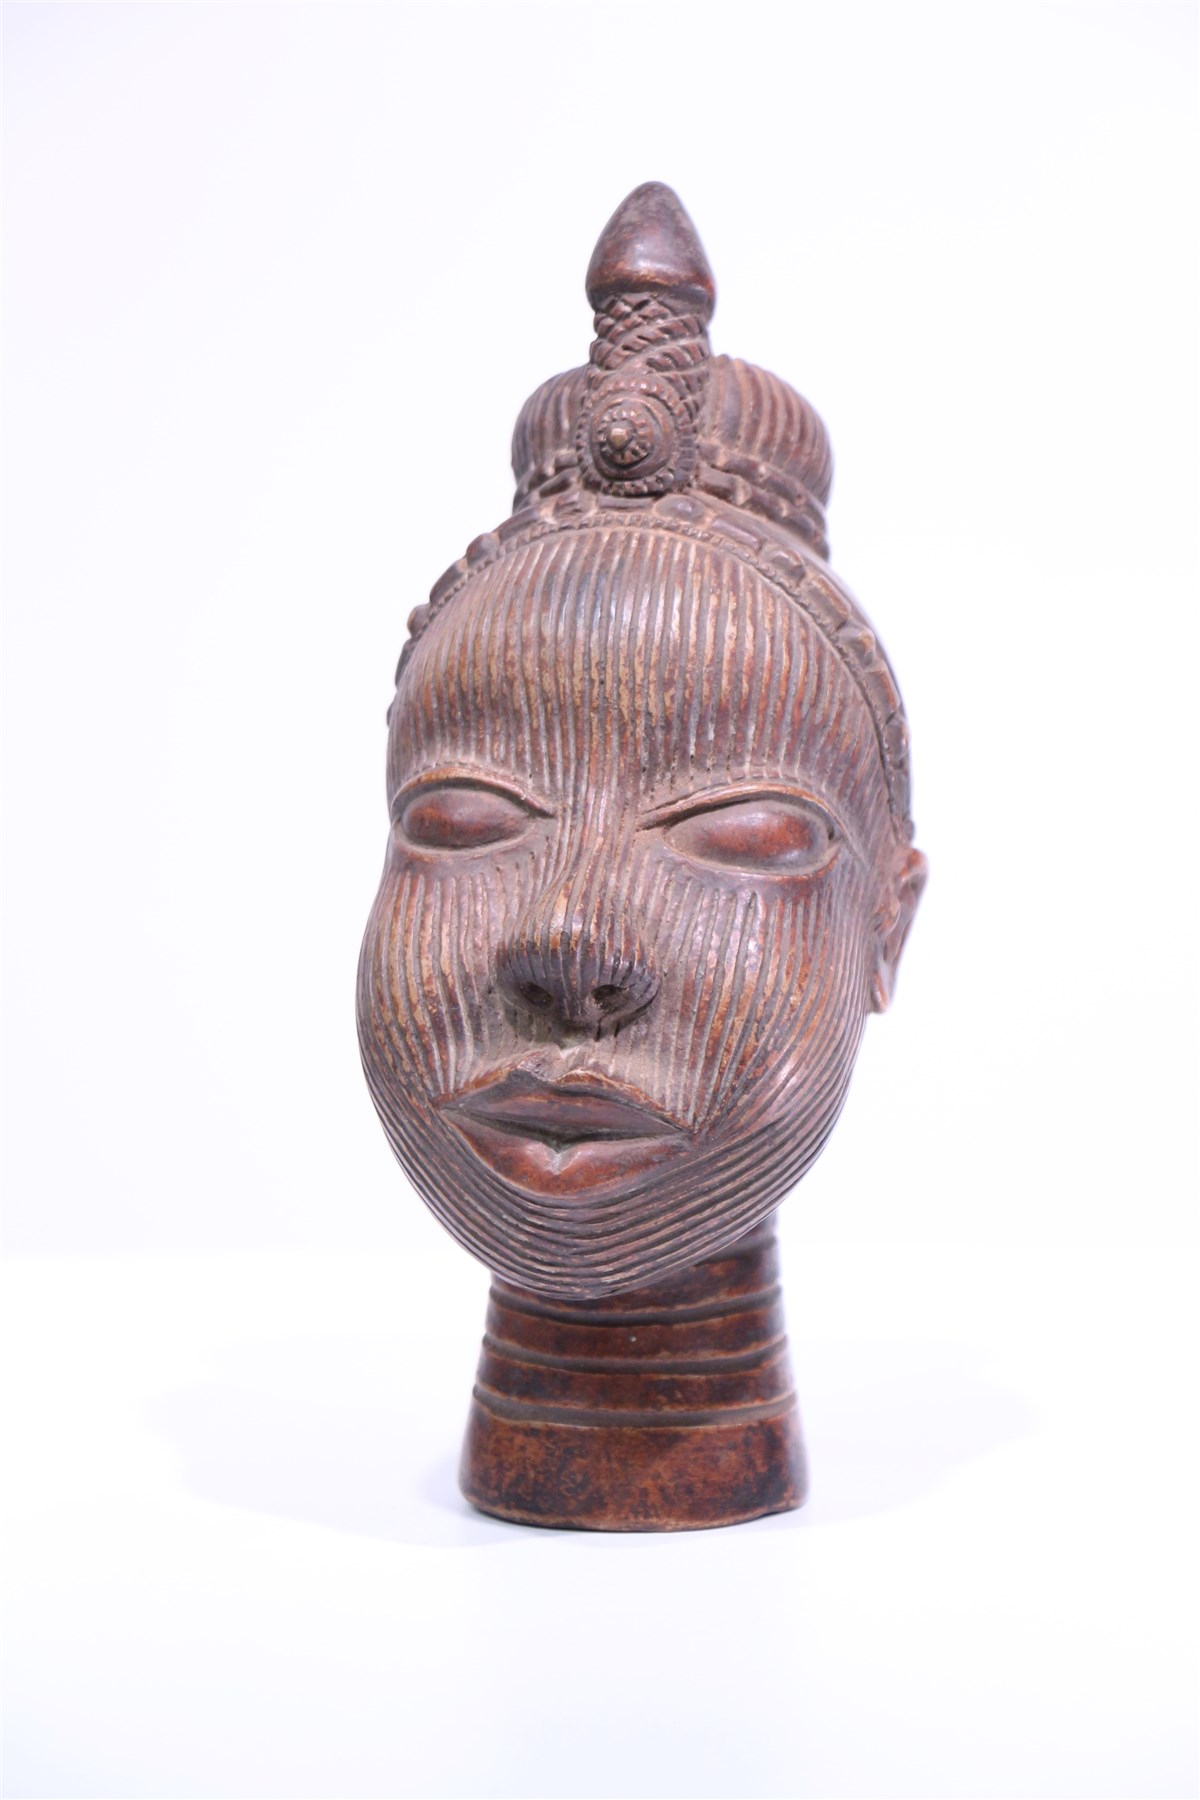 Tete Ife - Déco africaine - Art africain traditionnel